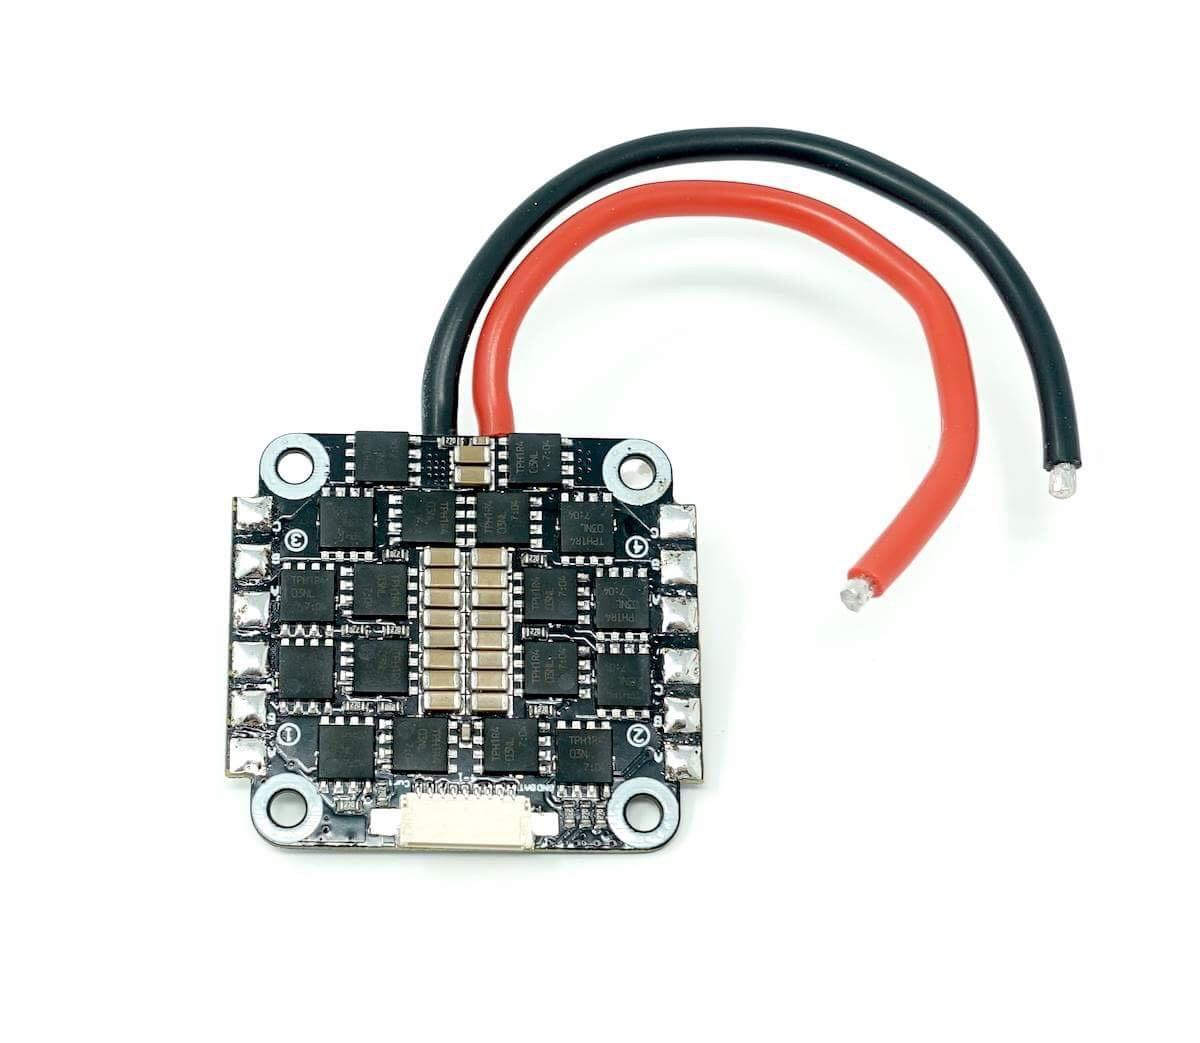 GS35A 4 in 1 Esc by Spedix for FPV Drones